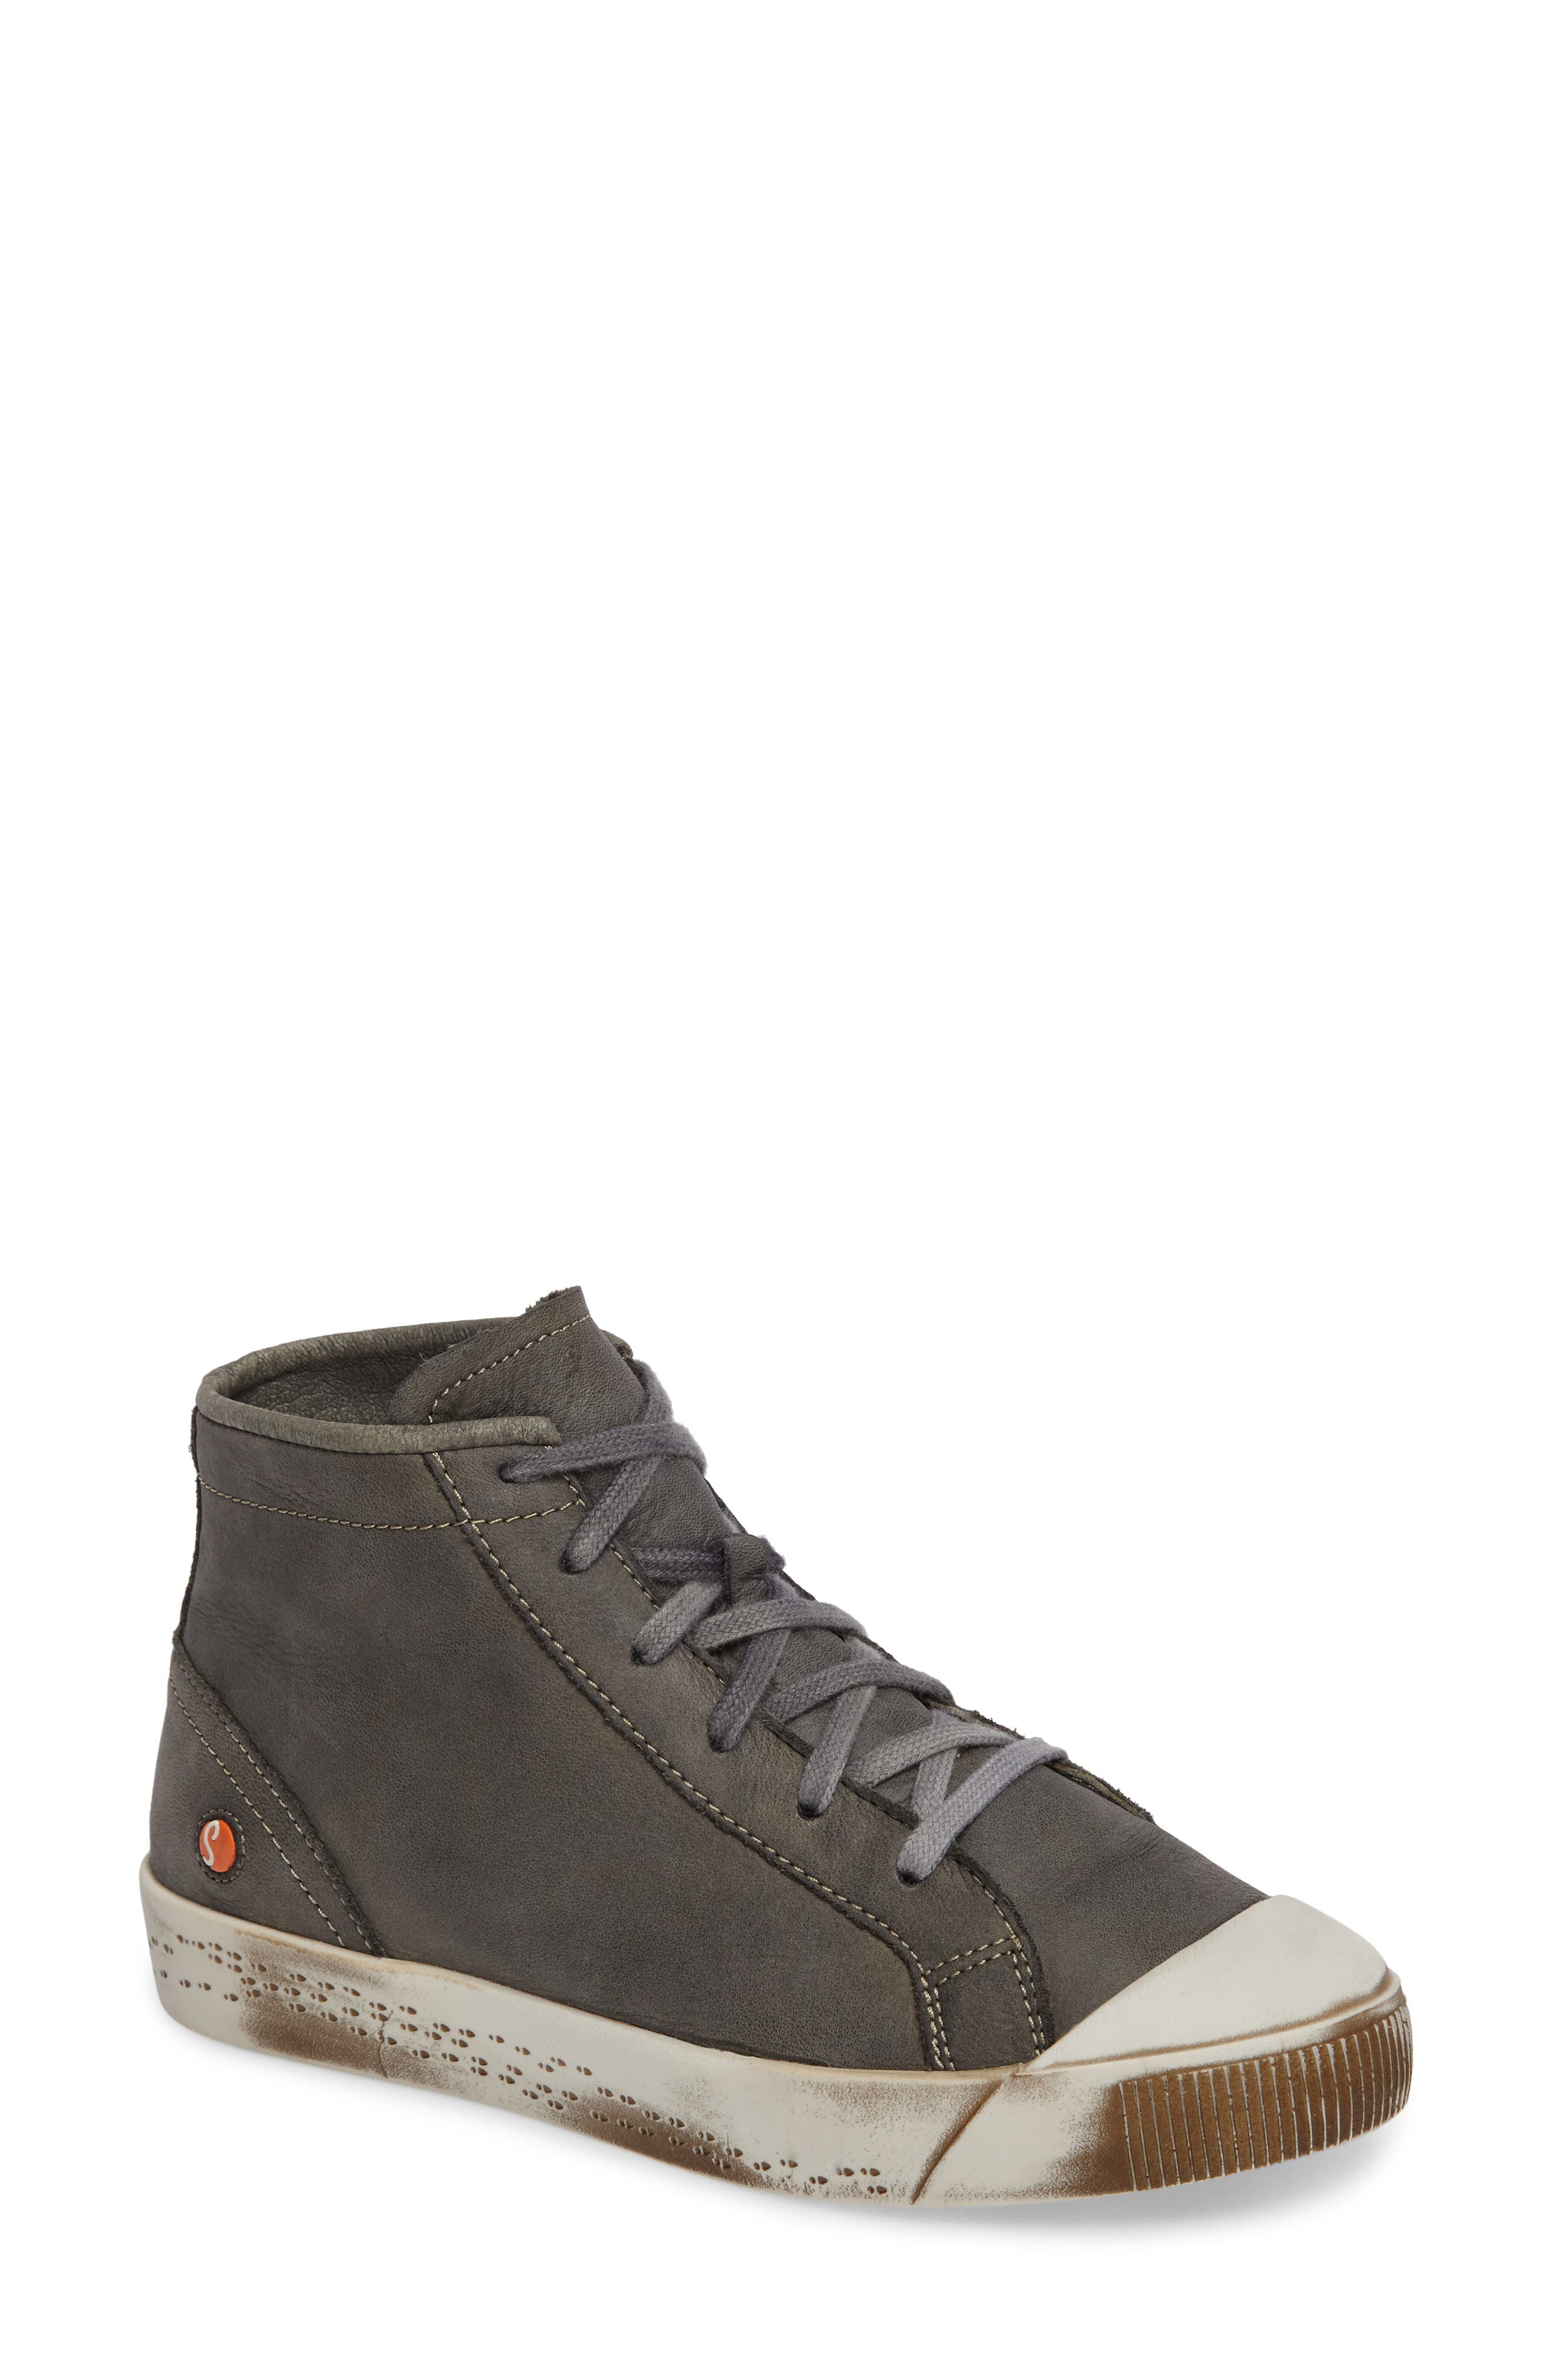 Alternate Image 1 Selected - Softinos by Fly London Kip High Top Sneaker (Women)